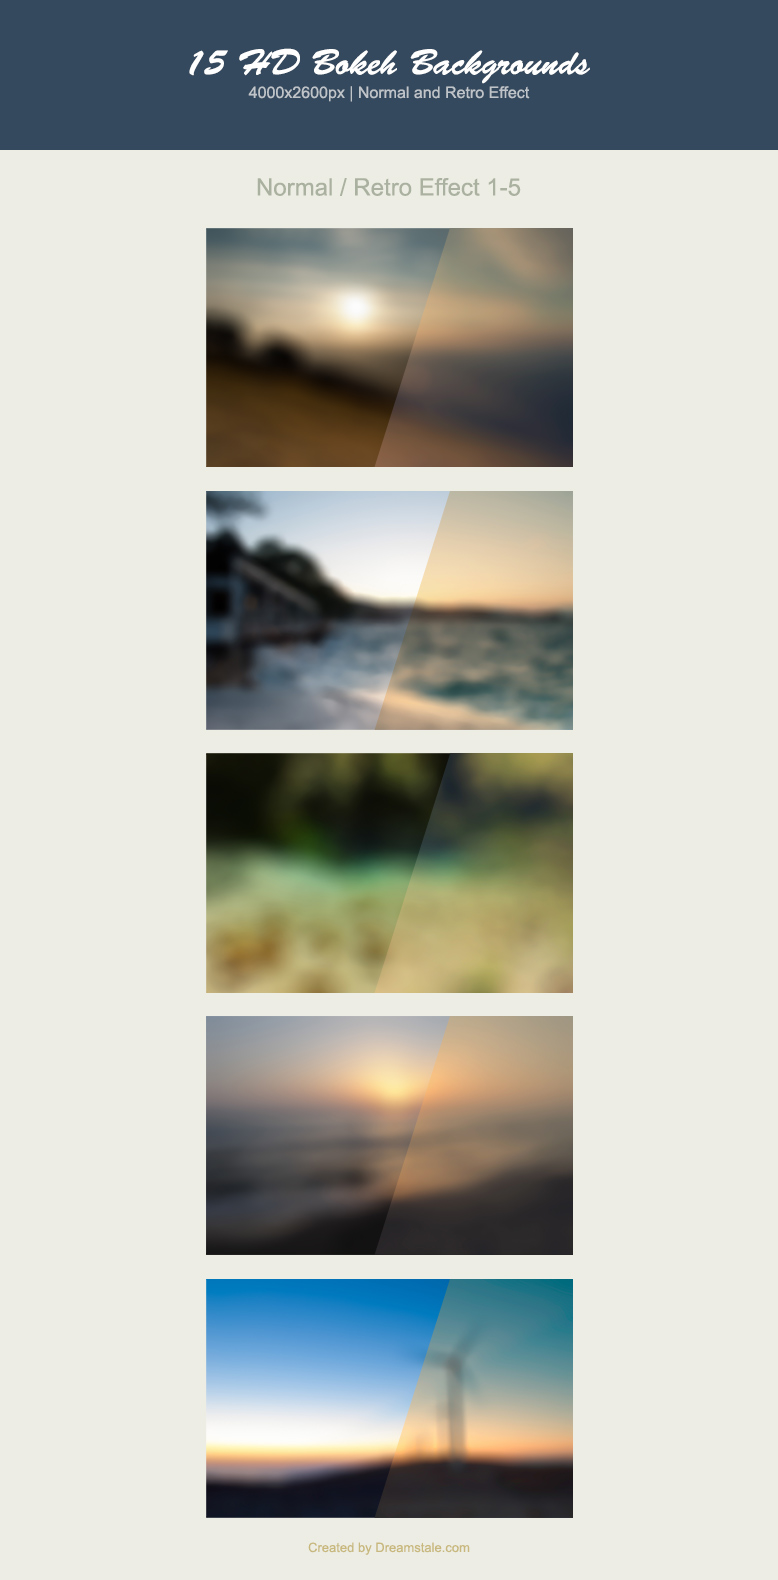 download 15 hd premium bokeh backgrounds - preview 1